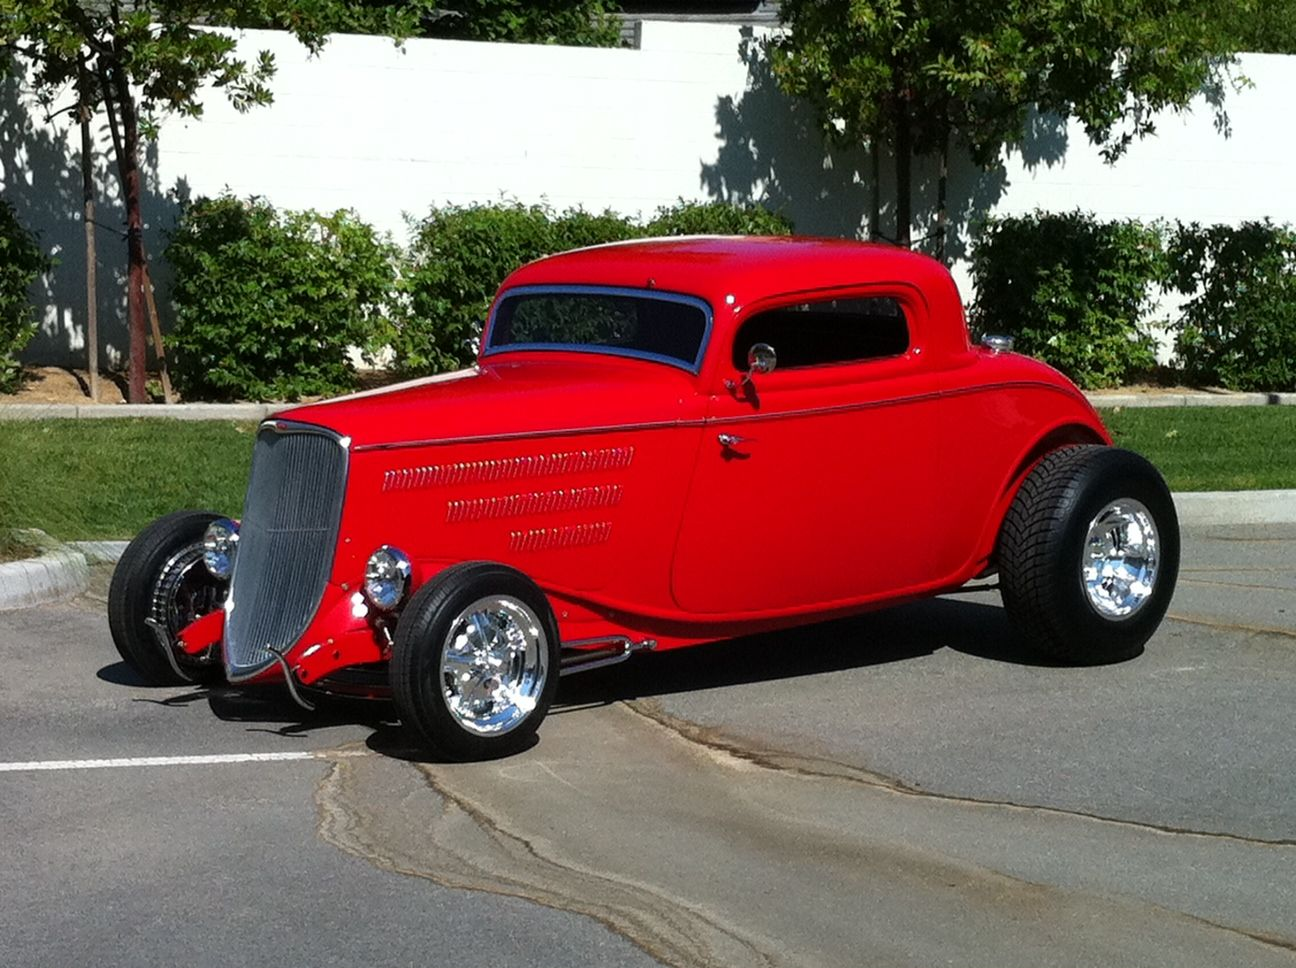 33 Ford Coupe! Now this is hot hot hot...anyone see ZZ Top